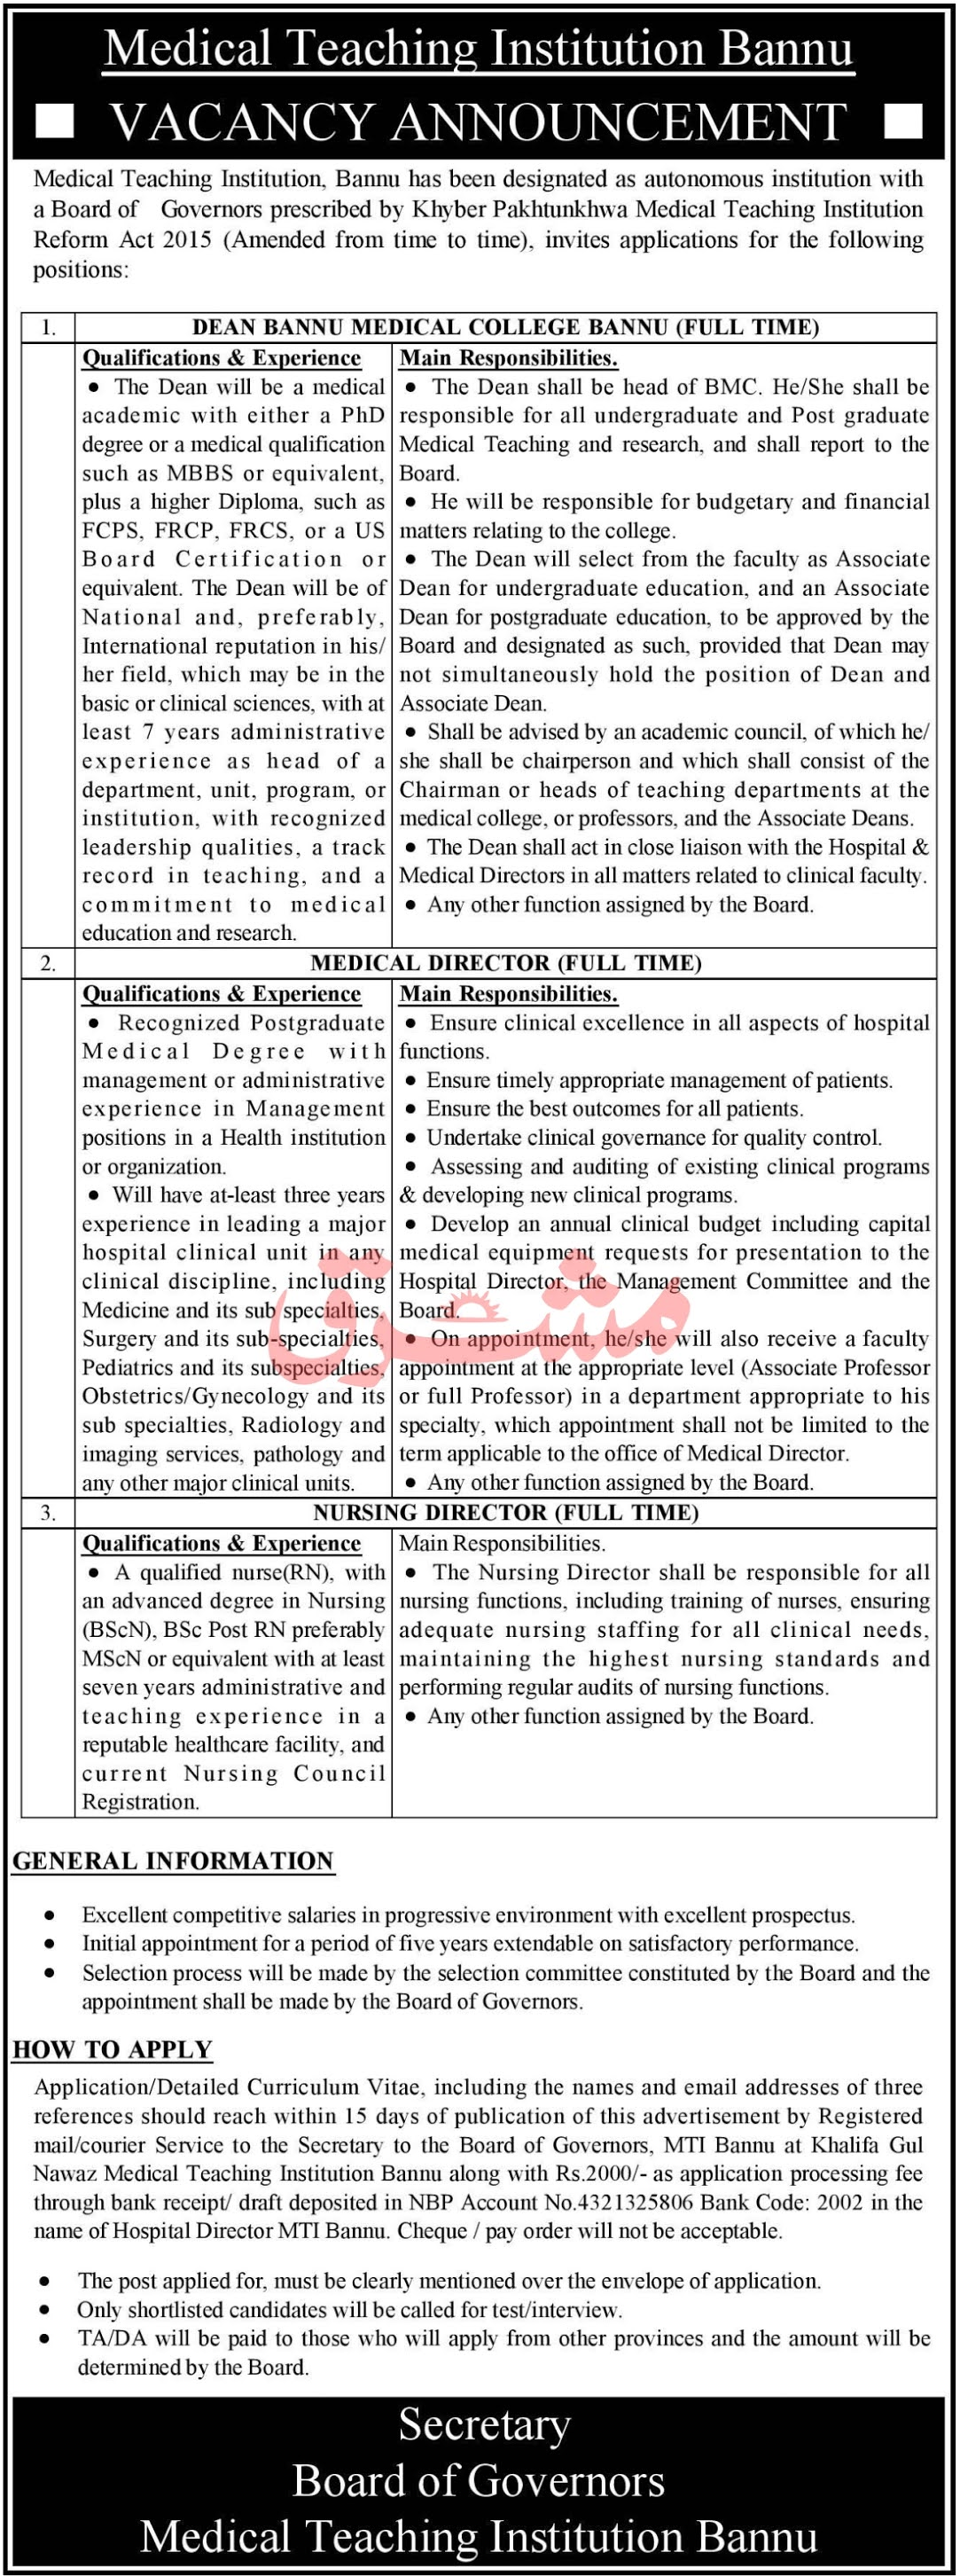 Medical Teaching Institution Bannu Jobs 2021 in Pakistan